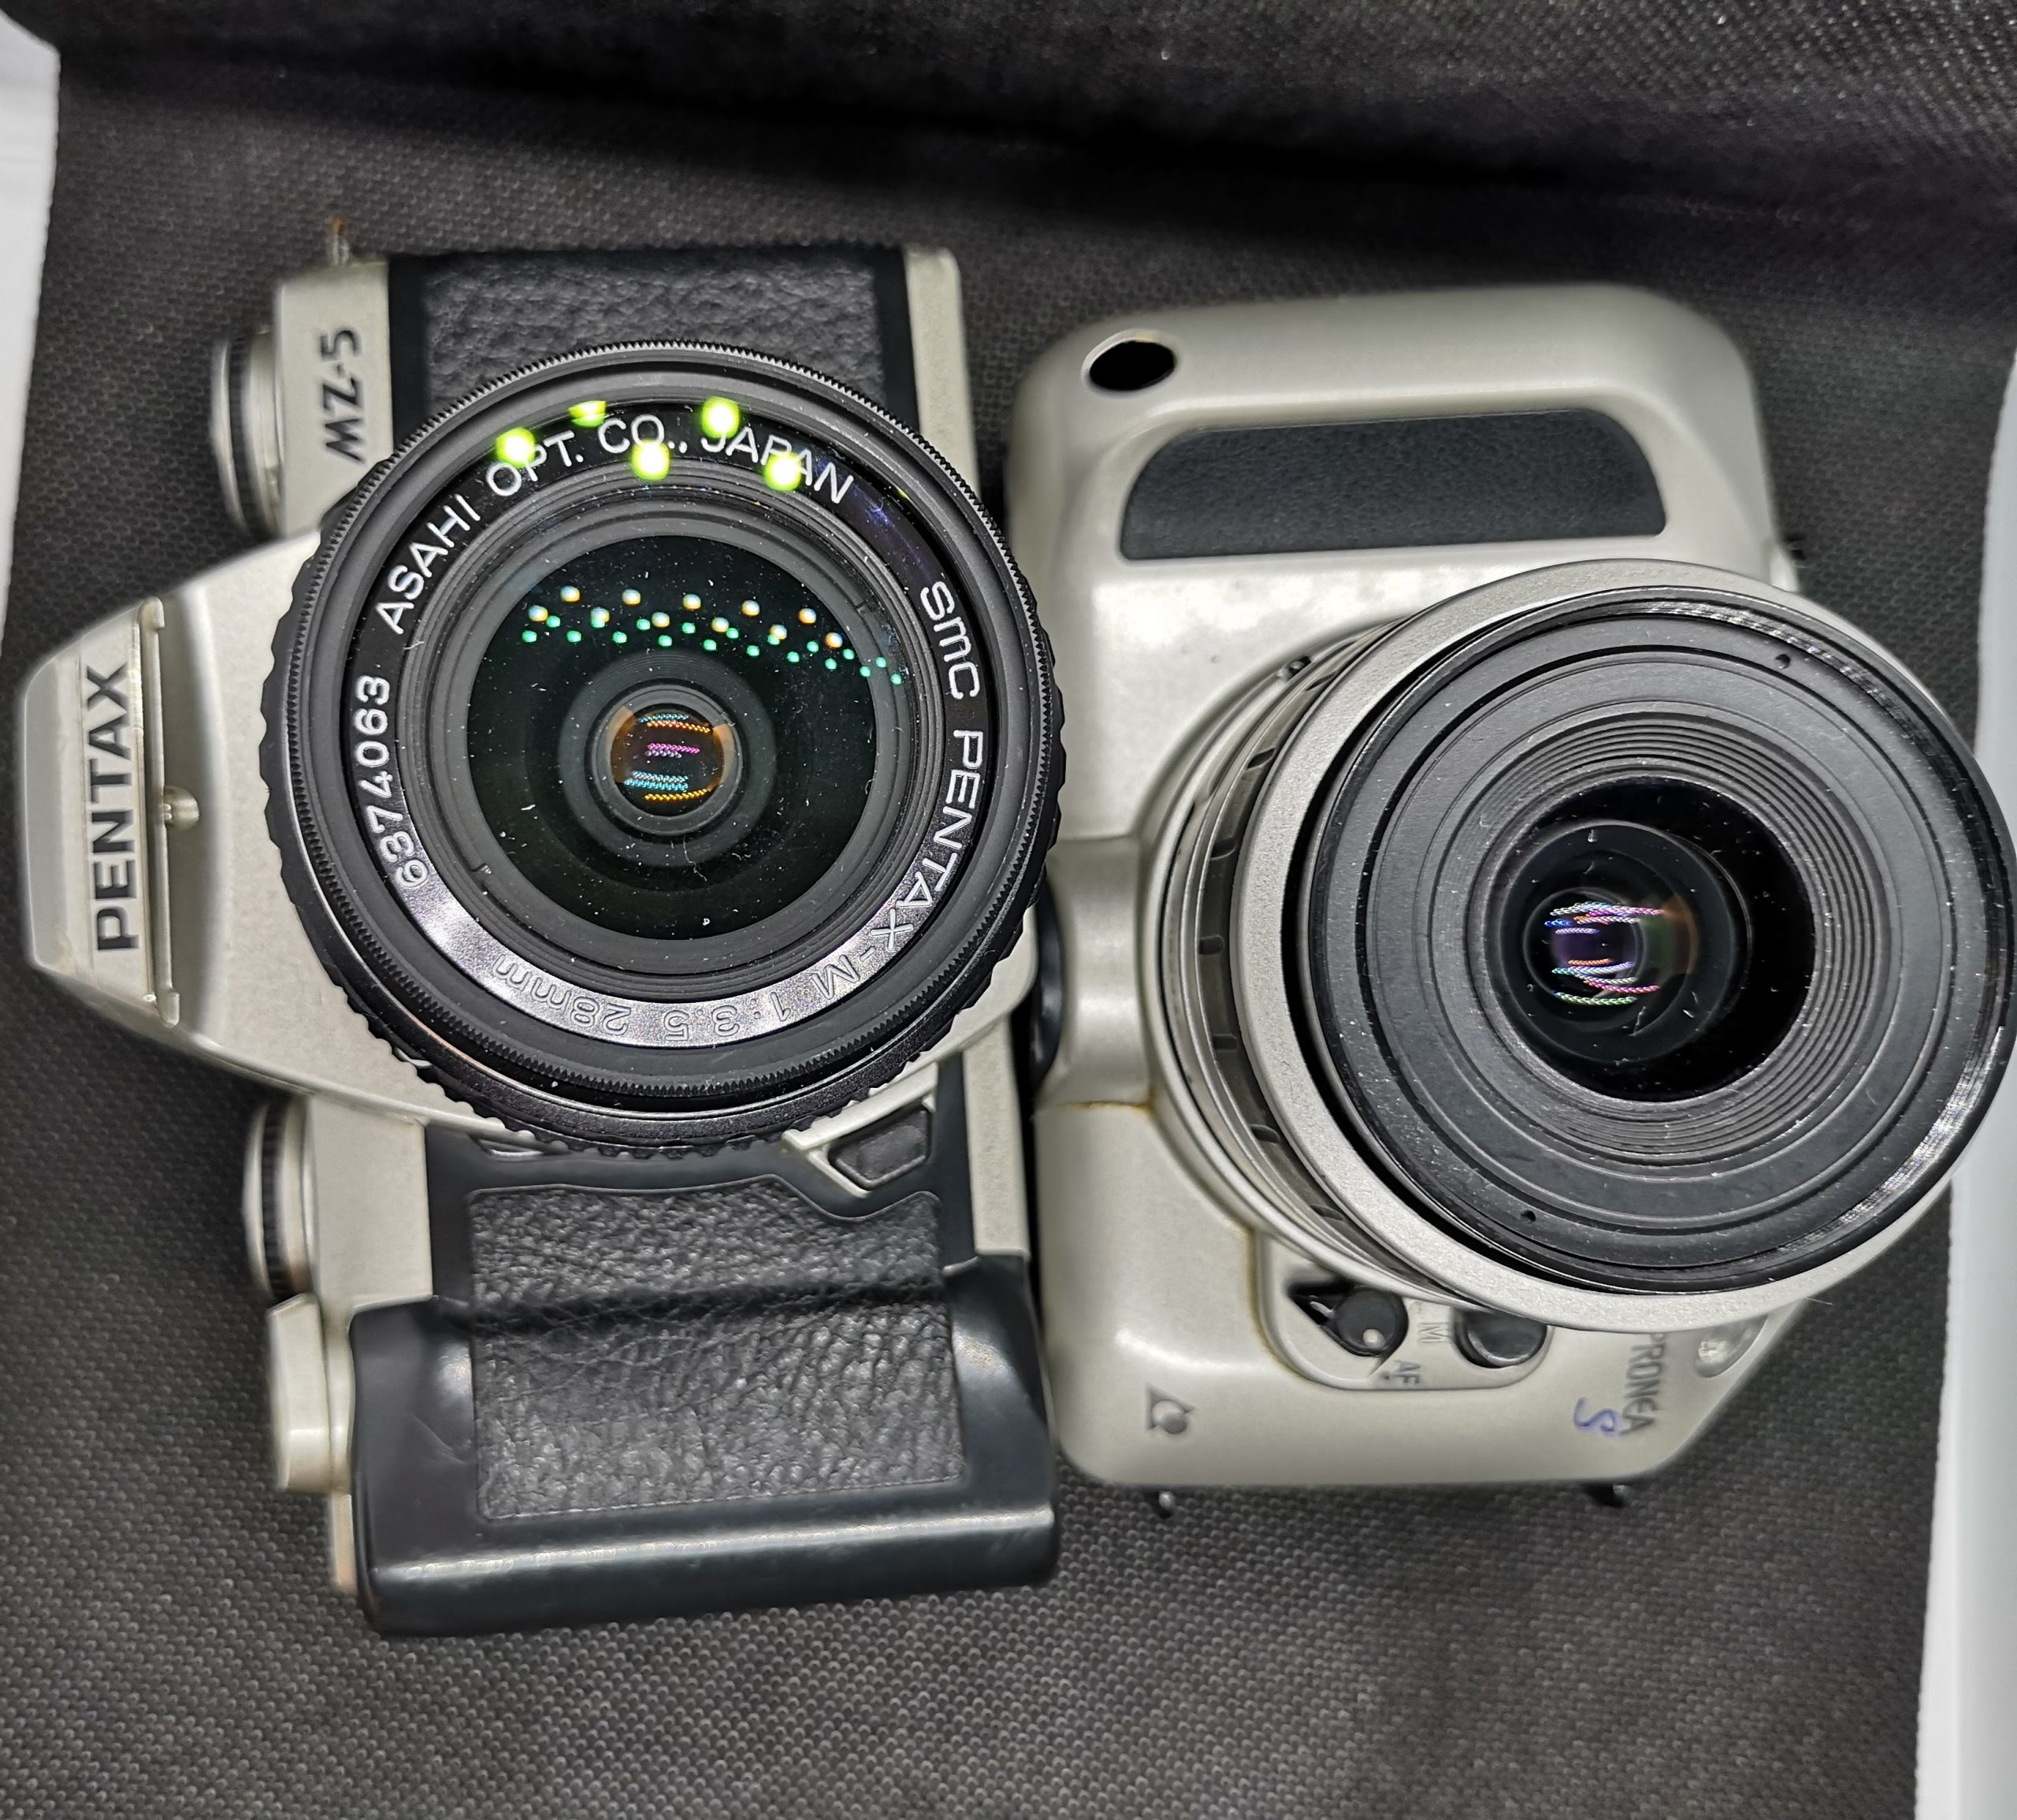 Pentax MZ-5 and Nikon Pronea S. The Prnoea is smaller but not by that much